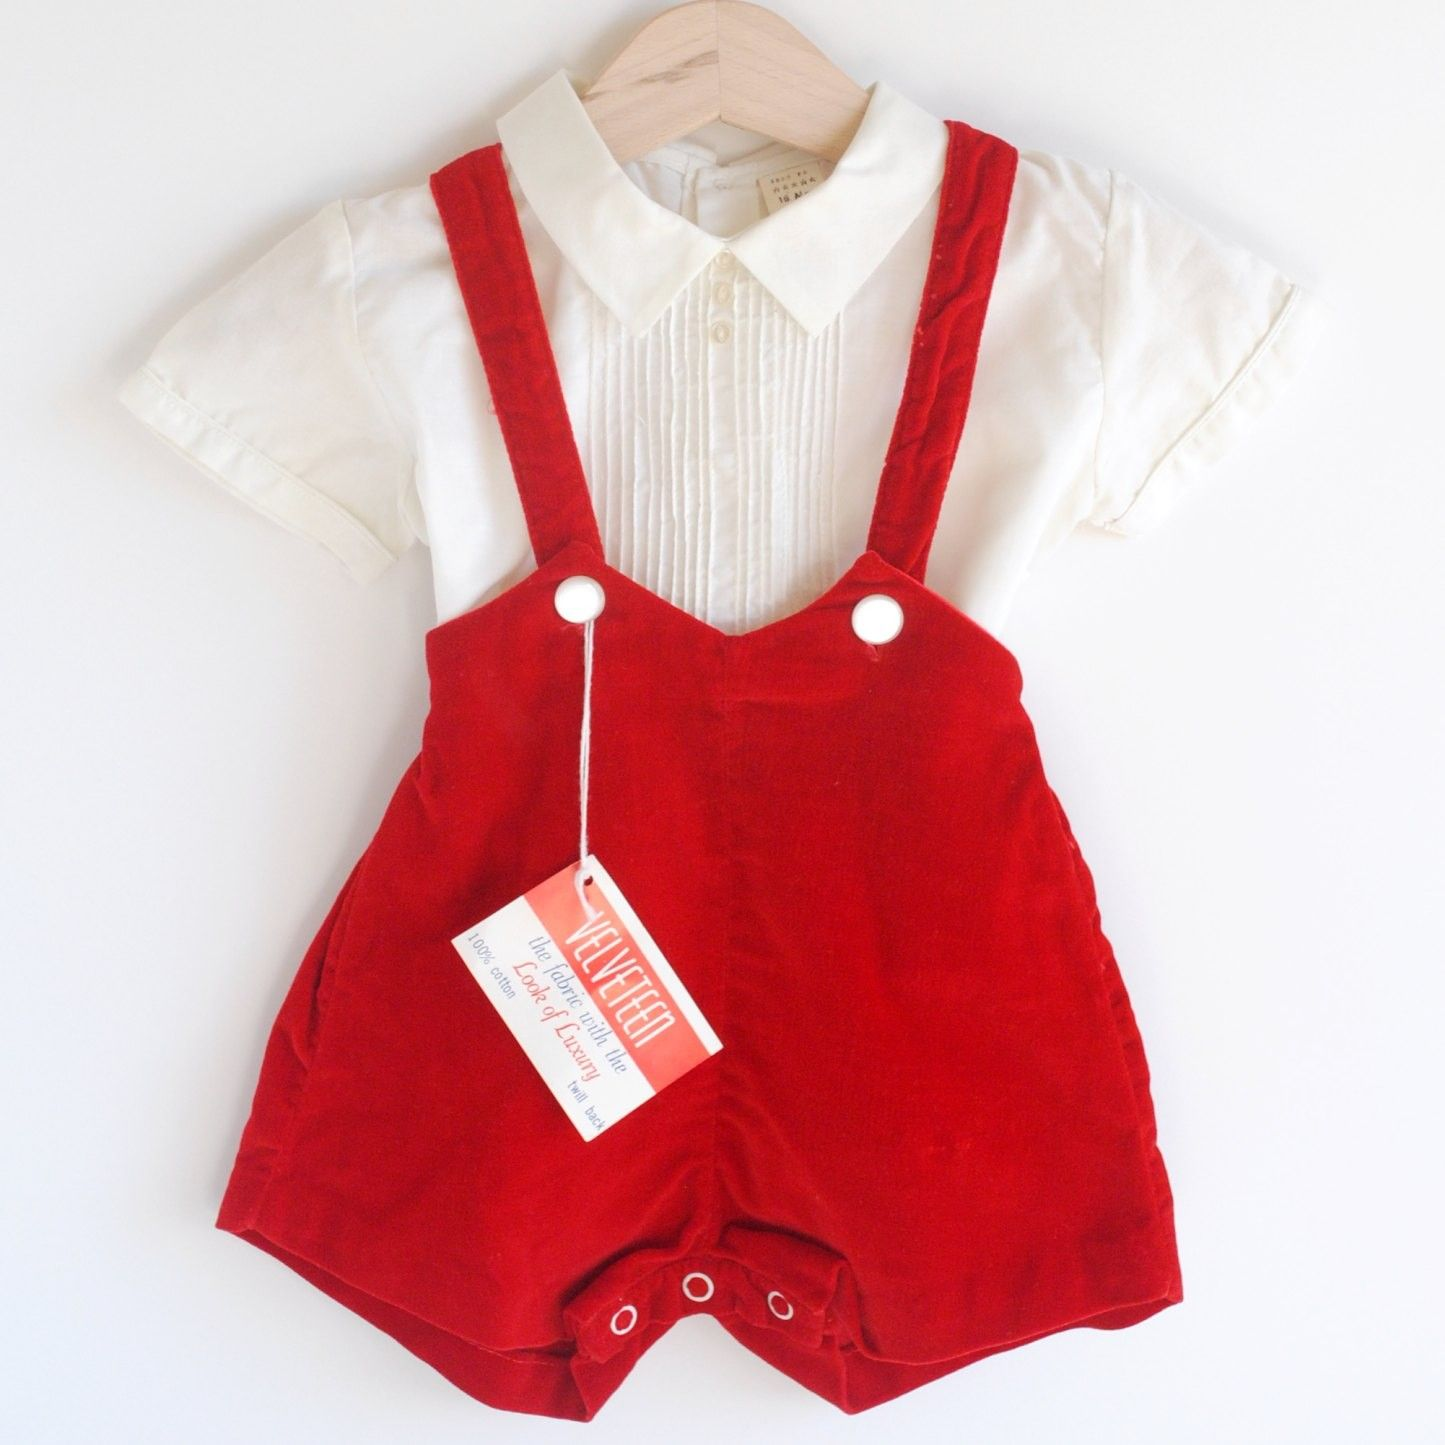 Vintage baby toddler boy s outfit I want this for my future baby